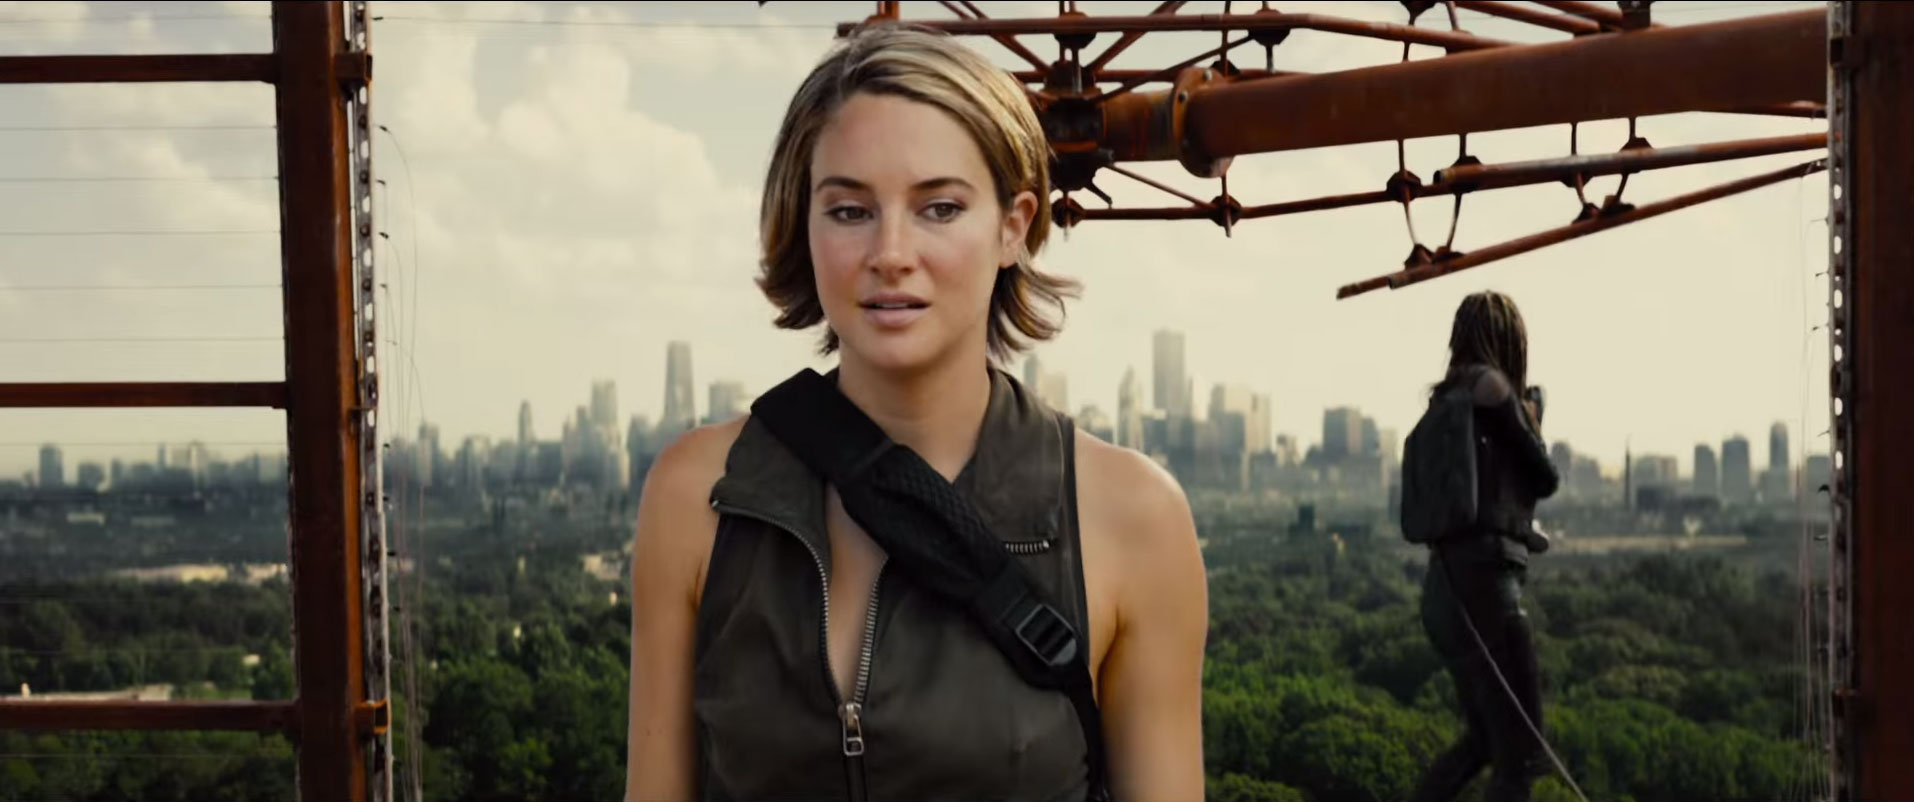 Image: The Divergent Series: Allegiant